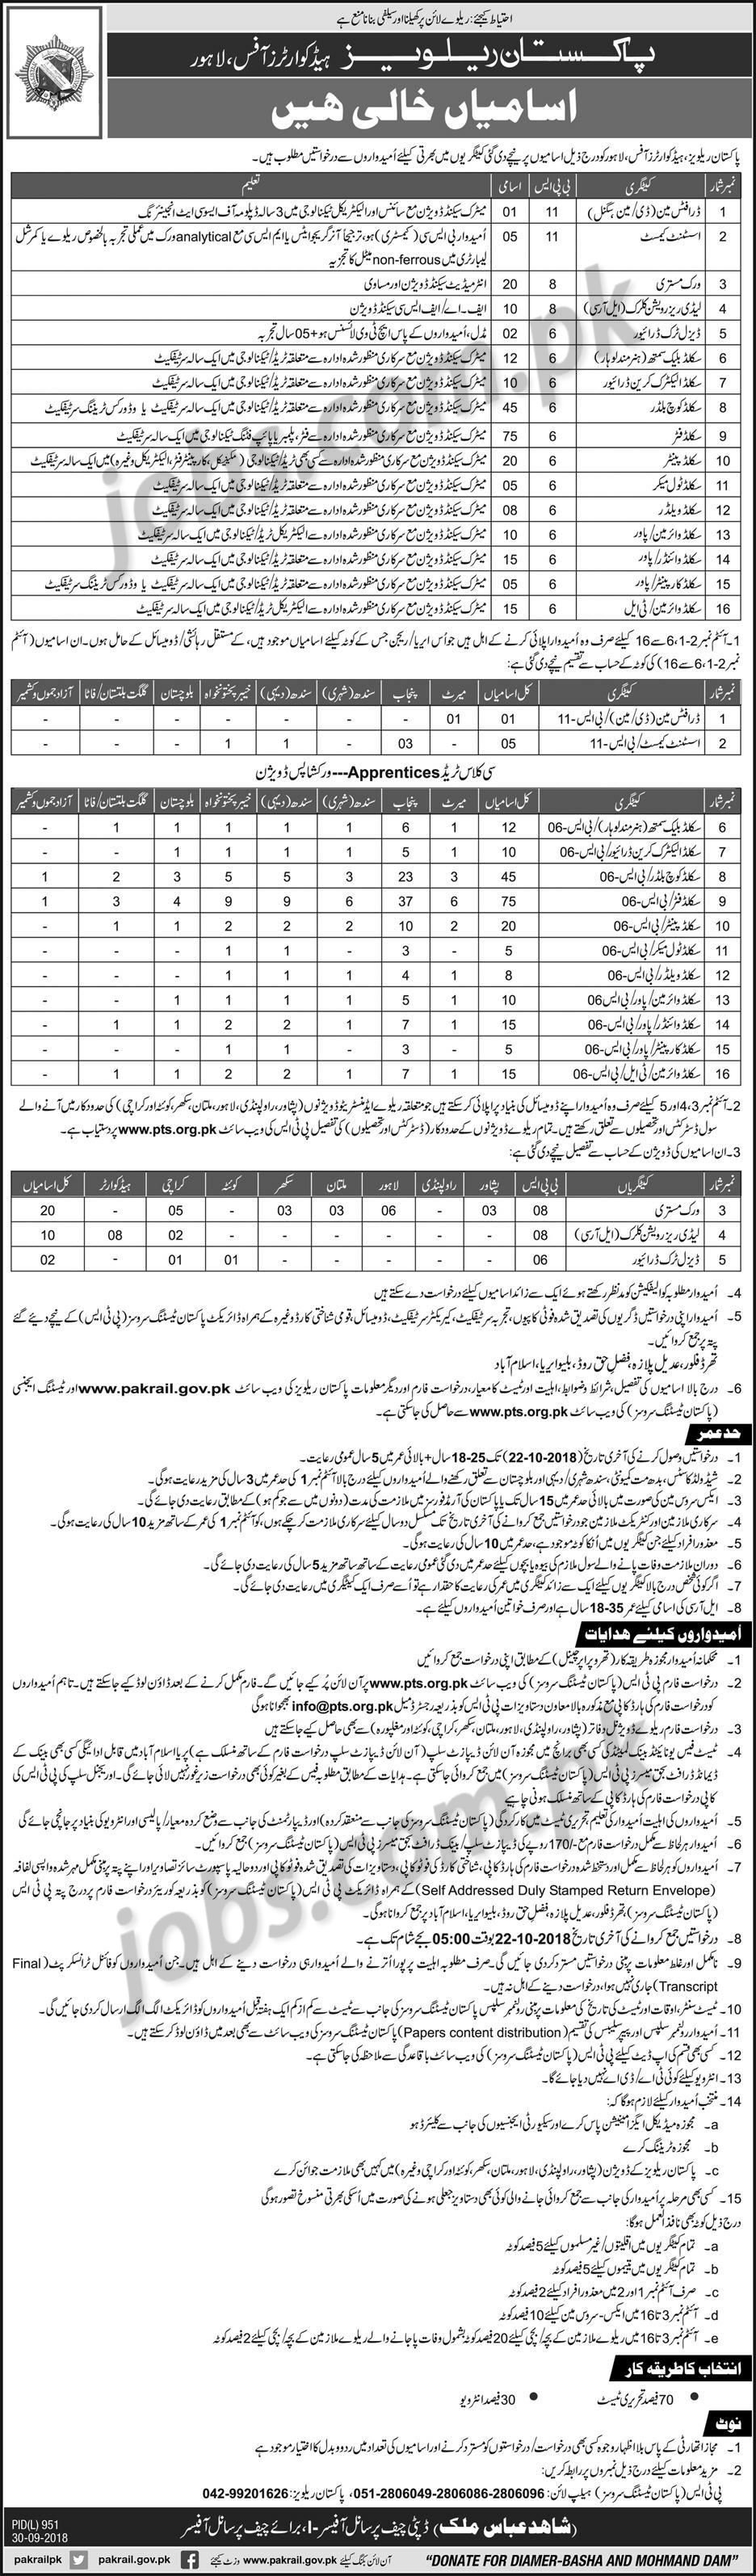 pakistan railways jobs october 2018 last date